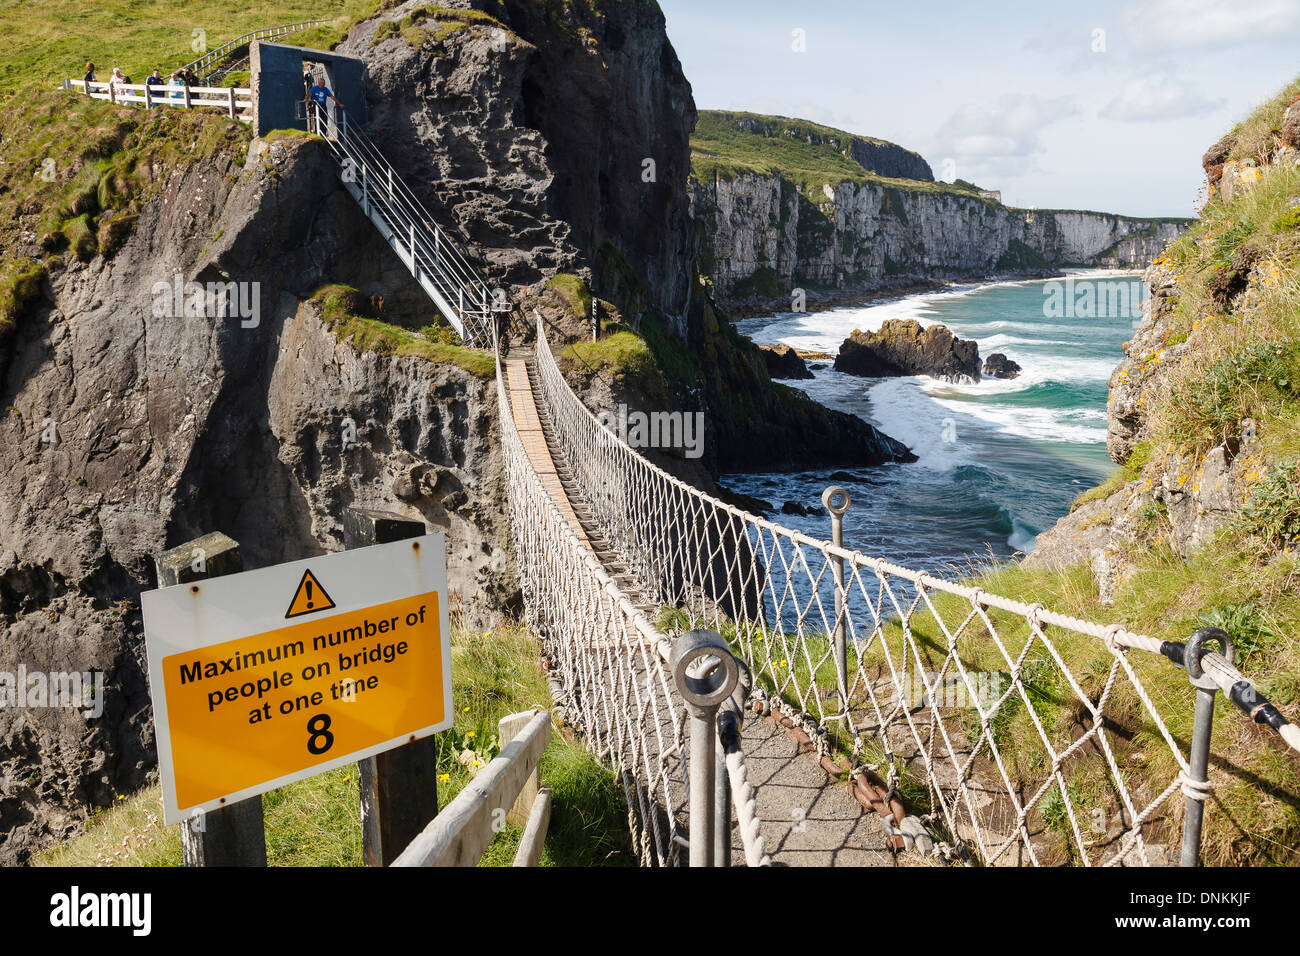 Carrick-a-rede Rope Bridge, County Antrim, Nort Ireland, United Kingdom - Stock Image